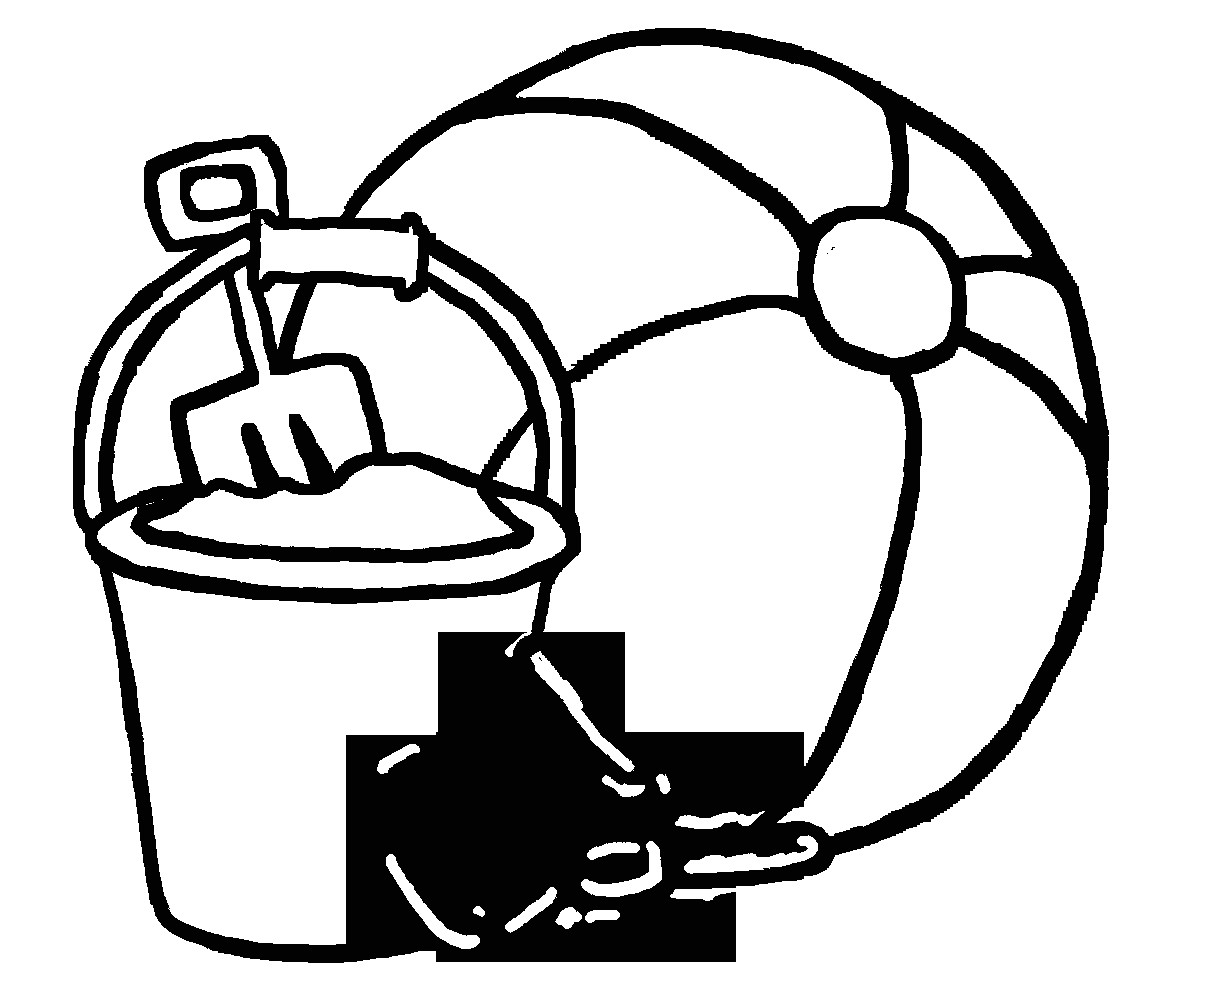 Beach Ball Coloring Pages For Kids Printable  Beach Toys Clipart